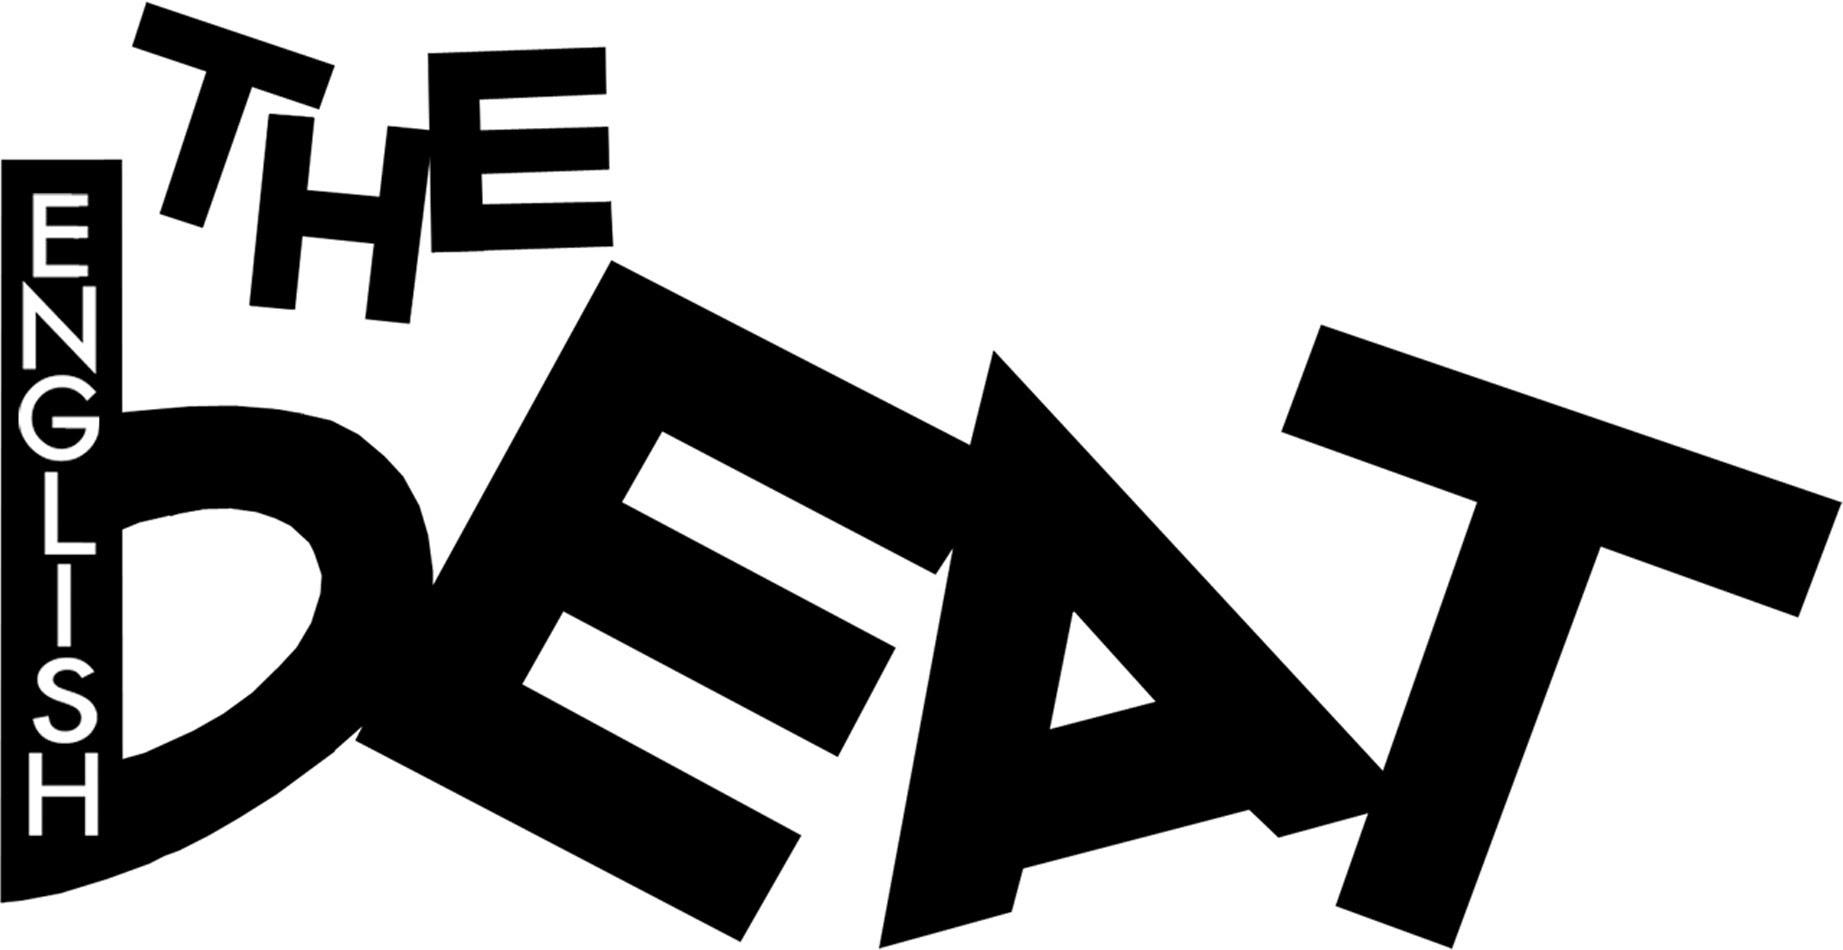 THE ENGLISH BEAT Announce U.S. Tour in Support of First New Album ...